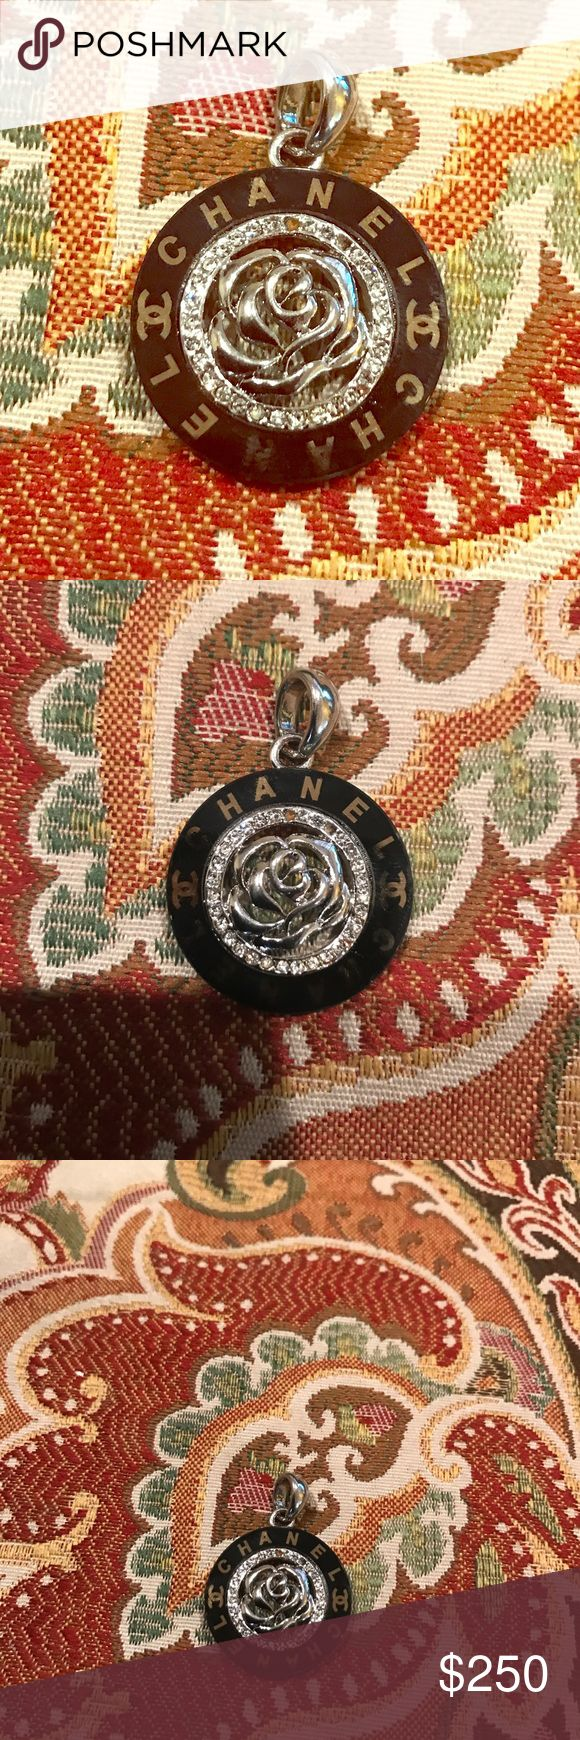 Authentic Chanel Camilla stone pendant Hello I have a authentic Chanel Camilla pendant for sale.This was given to me as a gift.I do not have the chain for it.This is a beautiful piece.I love it to death but do not really have the use for it.Thank you. CHANEL Jewelry Necklaces